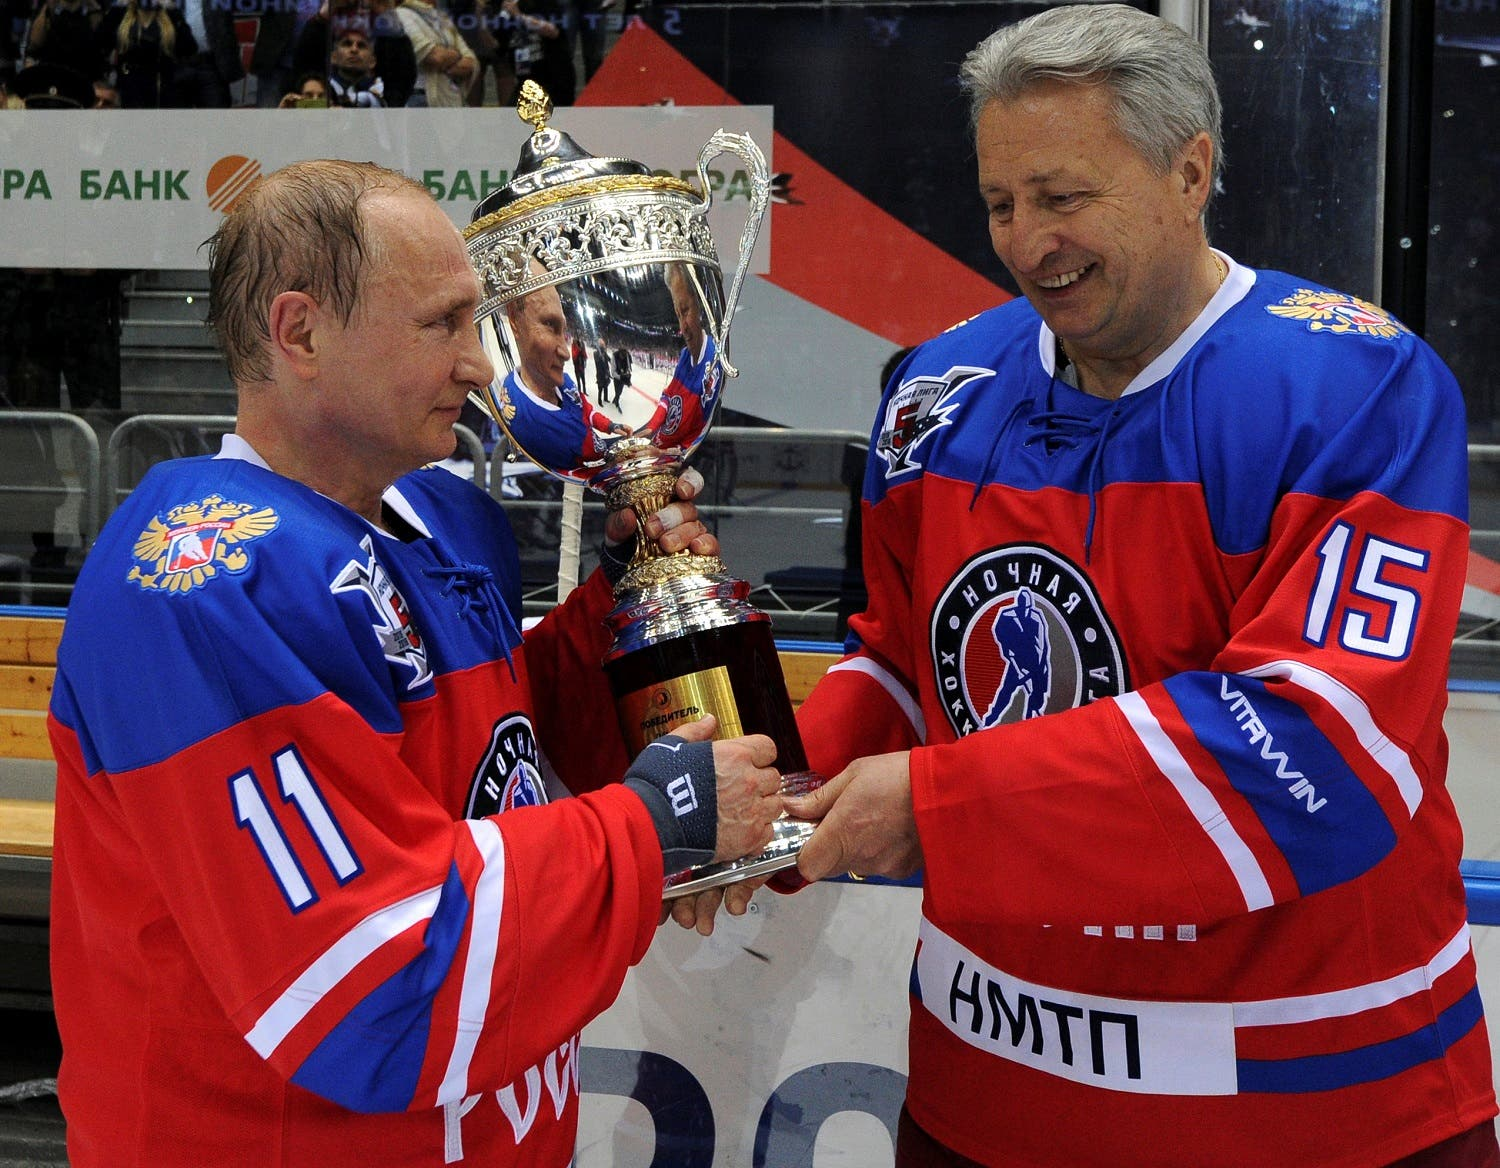 Russian President Vladimir Putin and Soviet former player Alexander Yakushev hold a trophy as they take part in a gala game of the Night Ice Hockey League in Sochi, Russia, May 10, 2016. Mikhail Klimentyev/Sputnik/Kremlin via Reuters